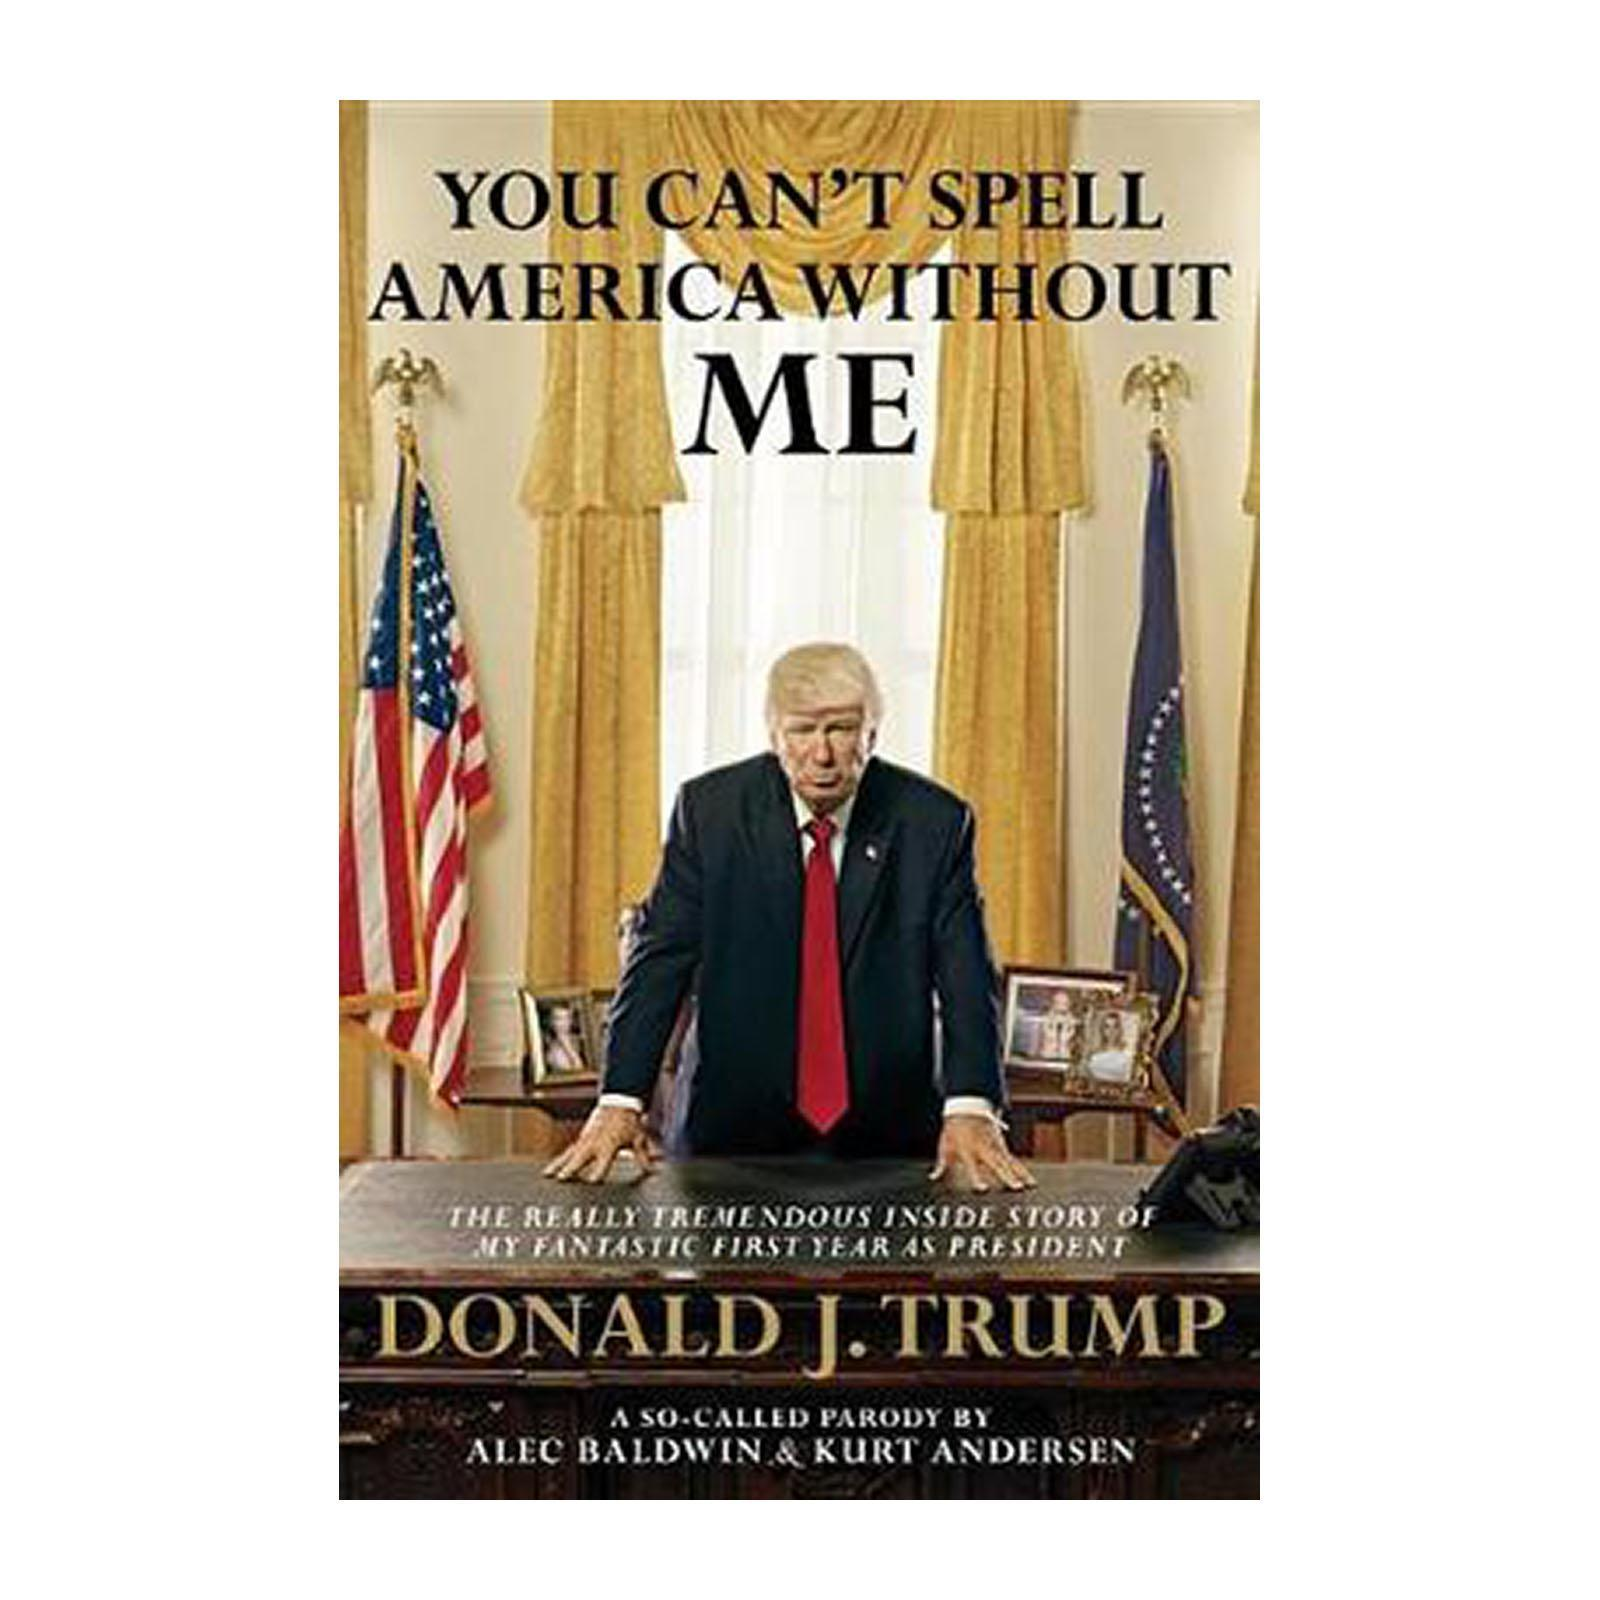 You Cant Spell America Without Me: The Really Tremendous Inside Story Of My Fantastic First Year As President Donald J. Trump (A So-Called Parody) (Hardback)